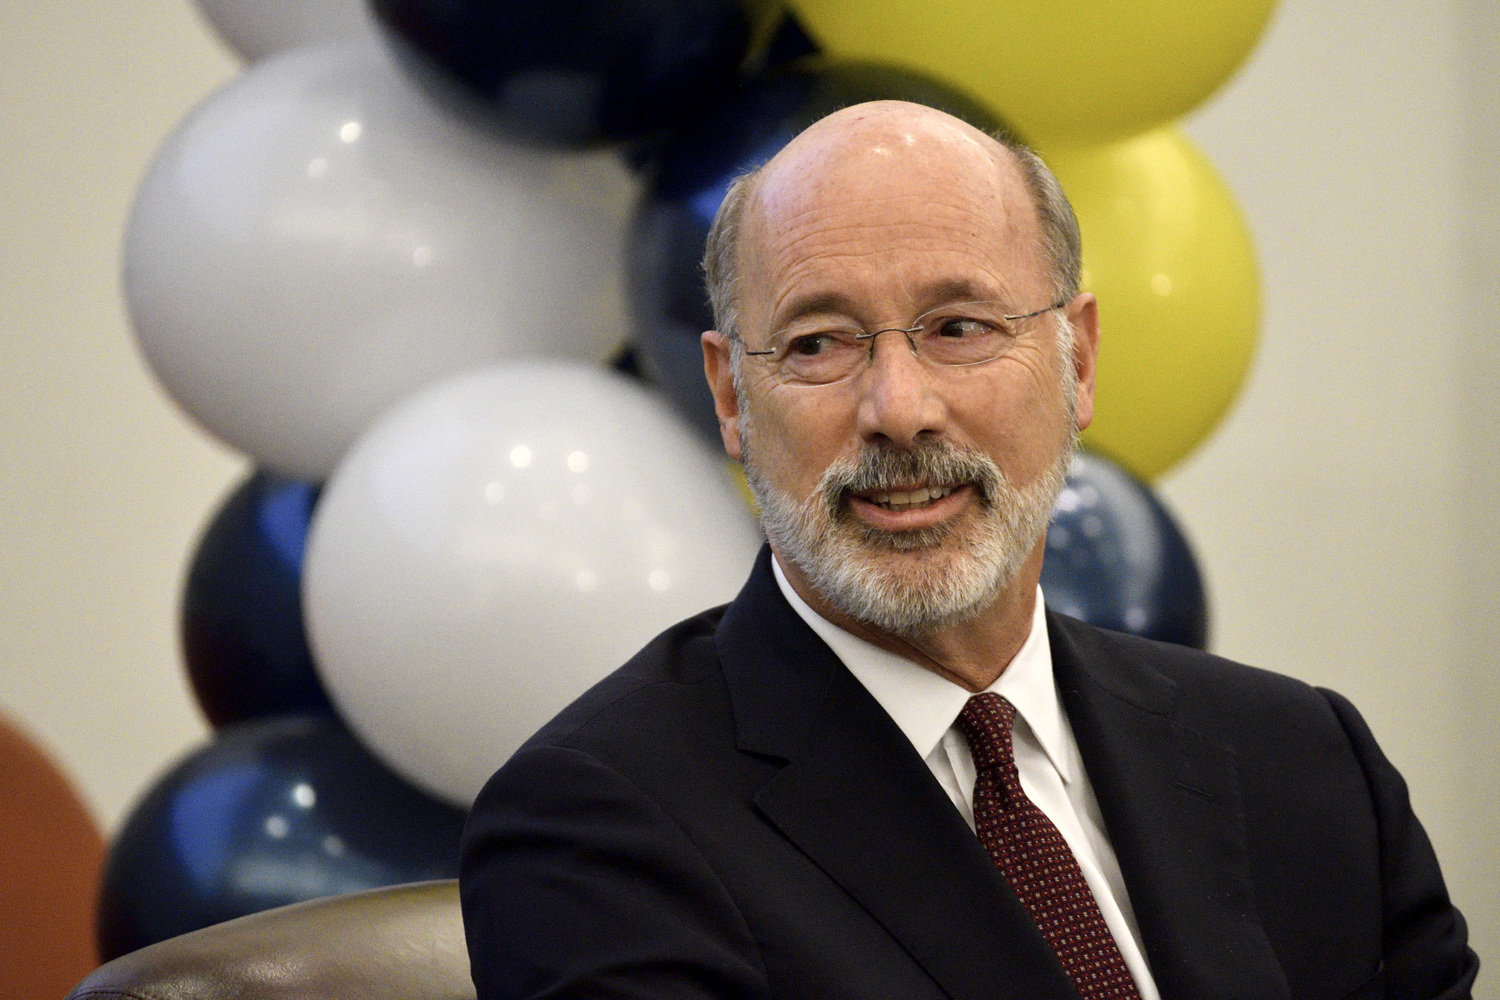 Gov. Tom Wolf recently signed legislation mandating that all universities in the state must create anonymous online reporting systems for complaints about sexual harassment and violence.